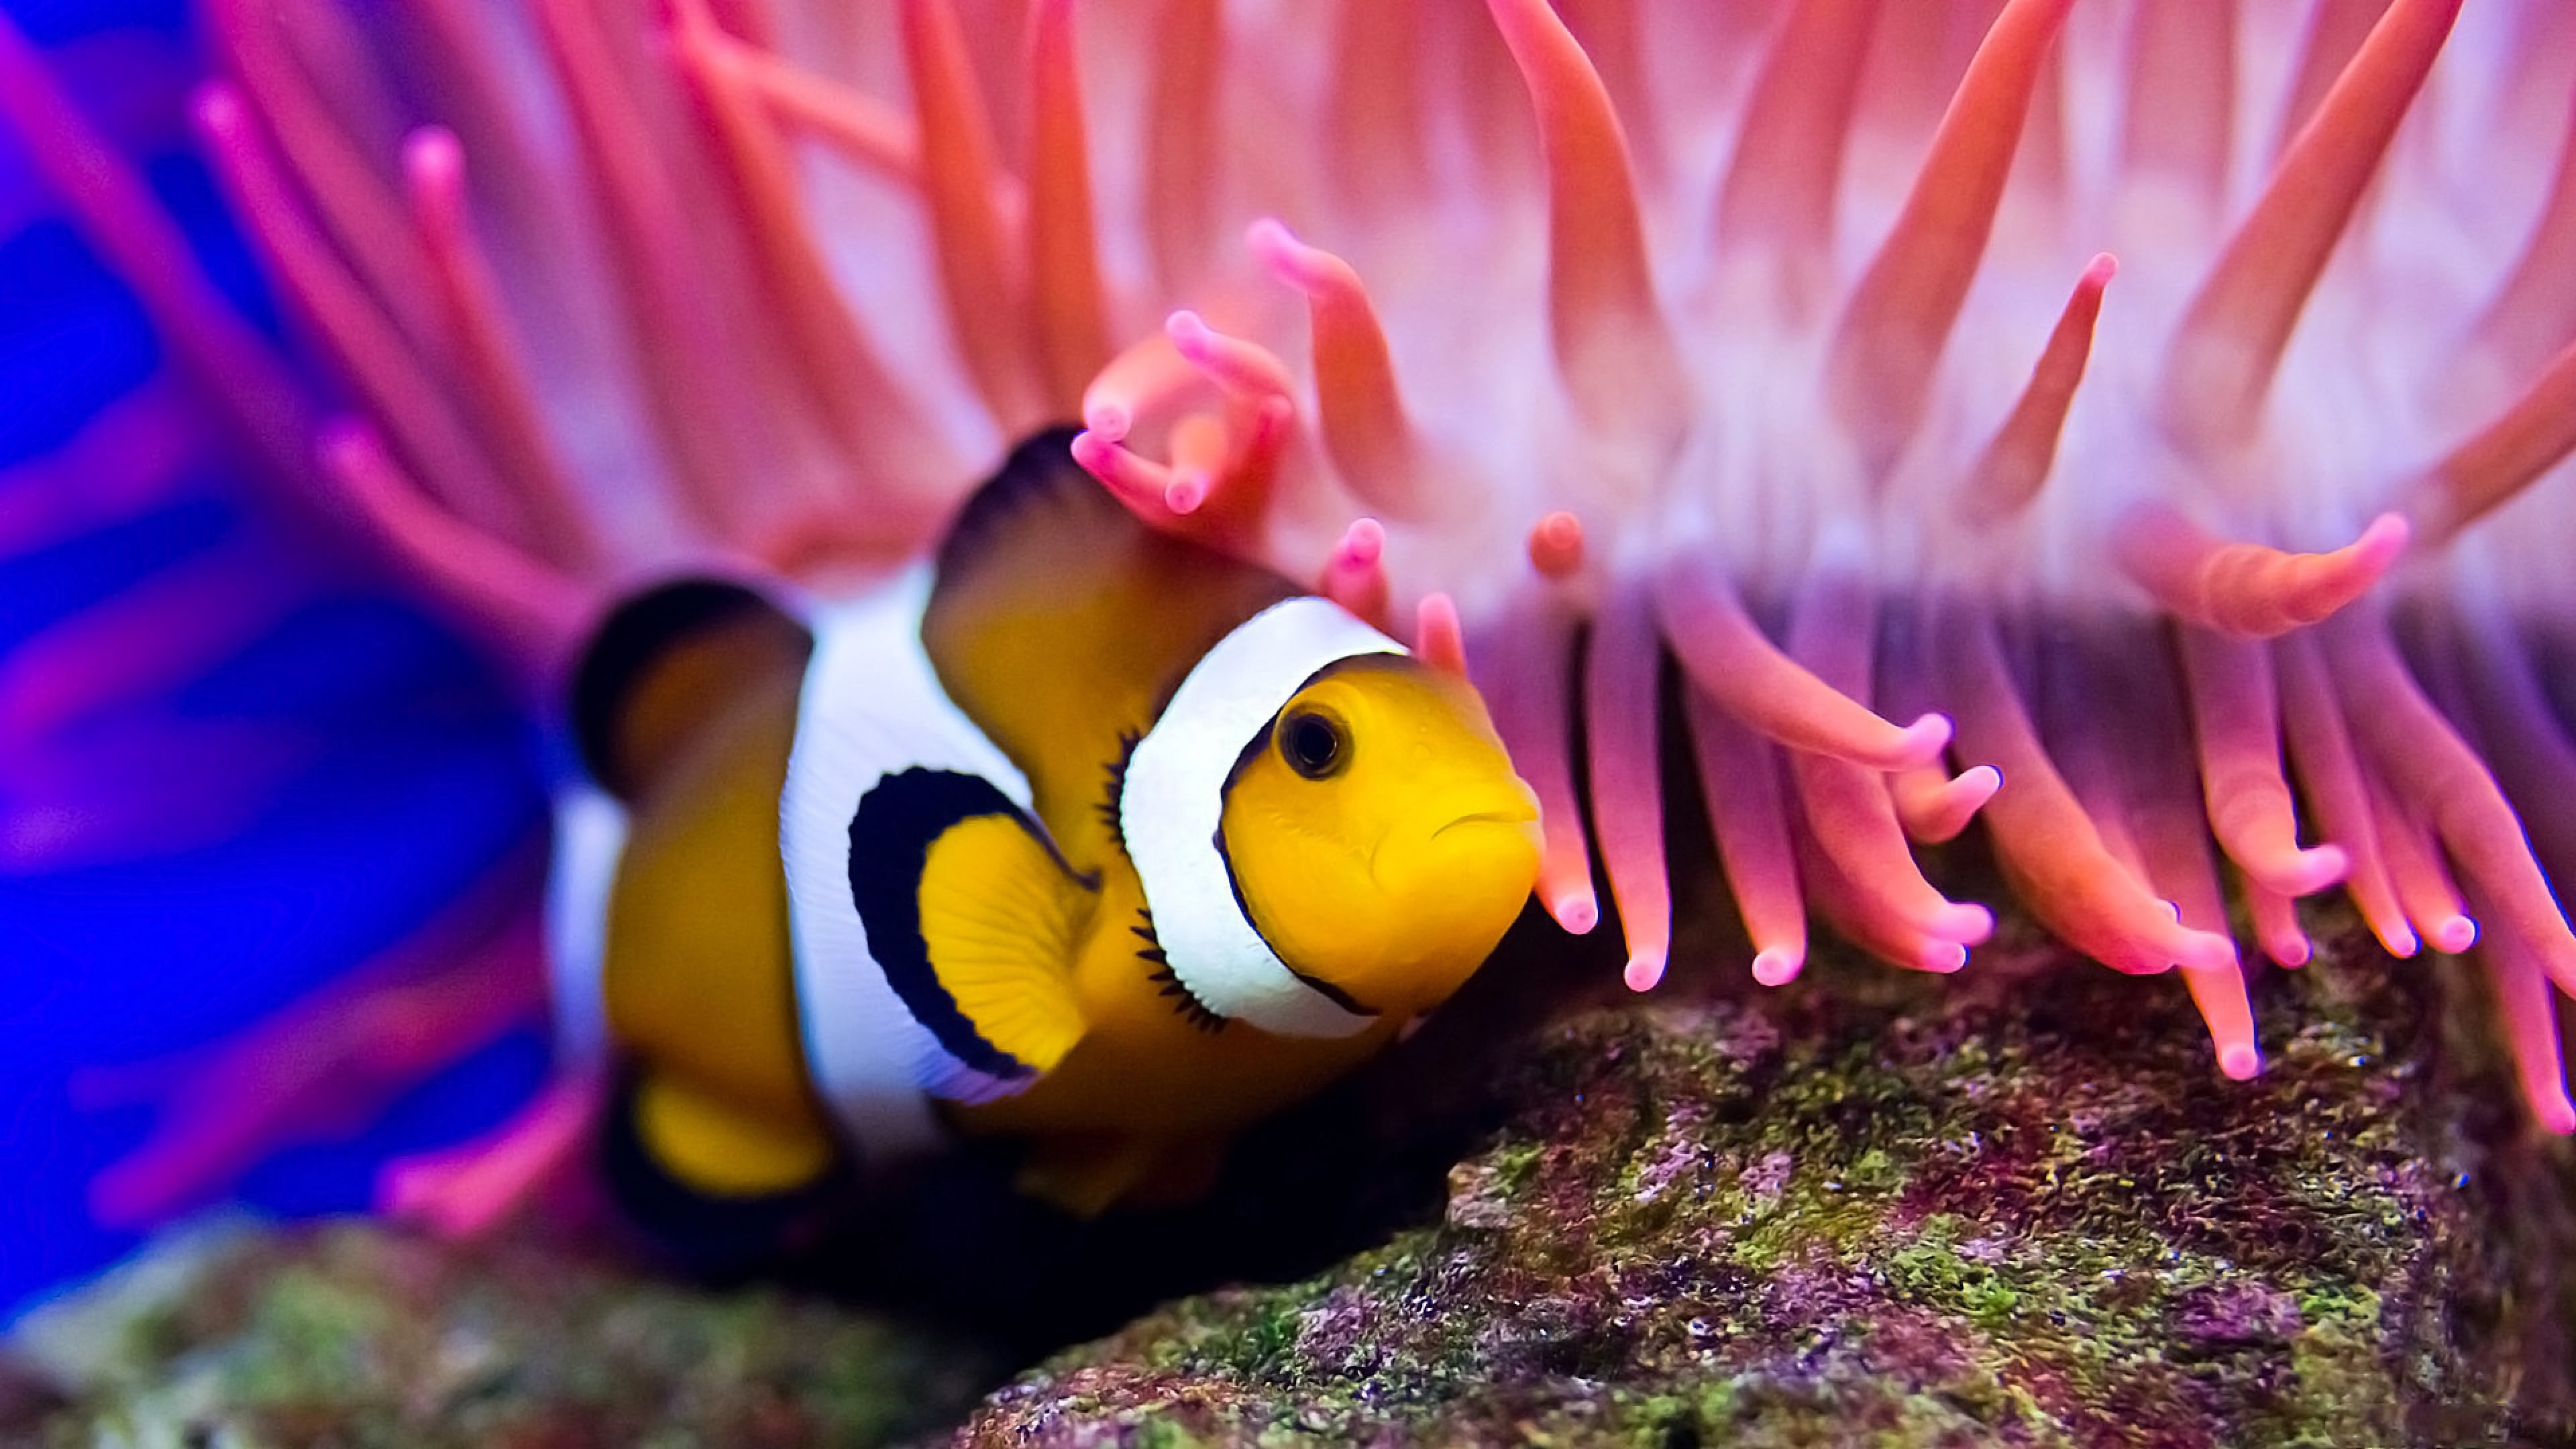 Clownfish download skype | Clownfish for Skype: The Online